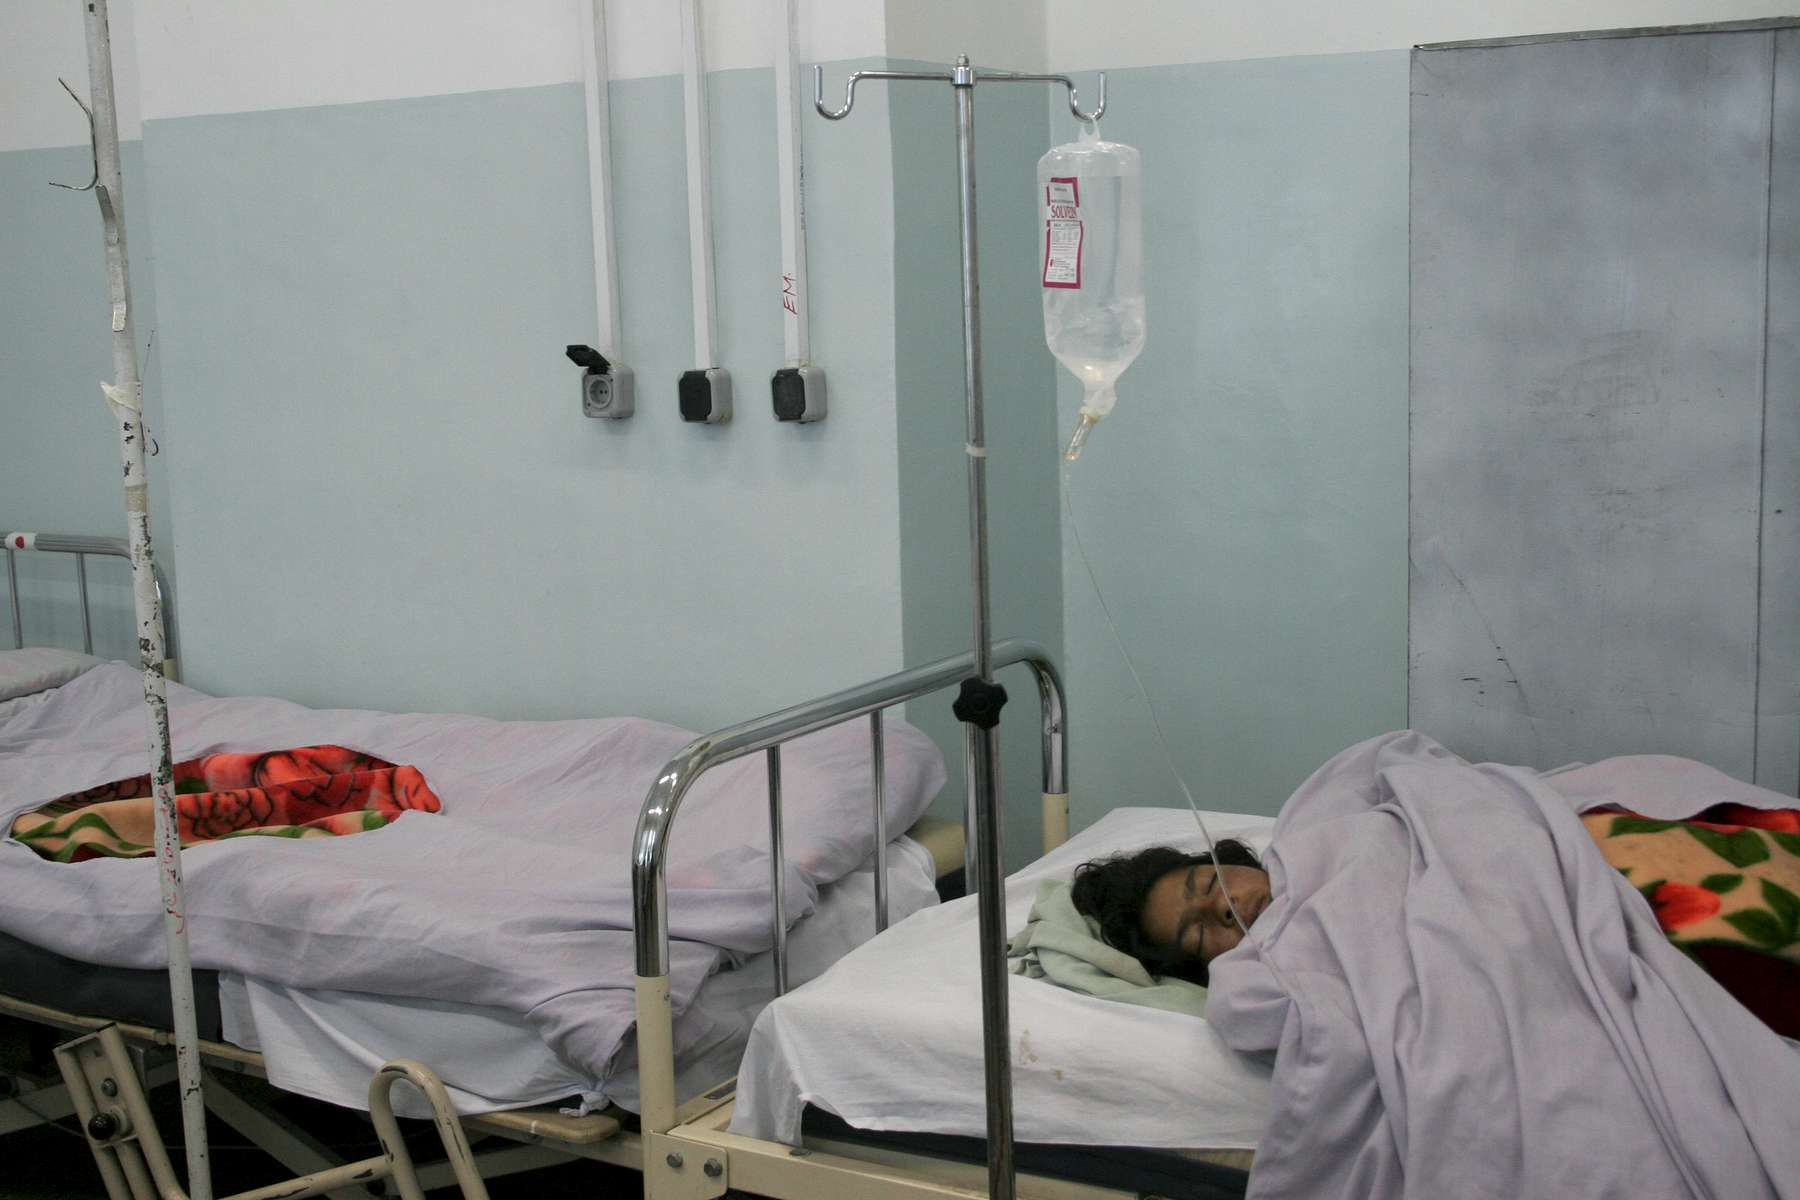 A woman rests in the post-op room, after a caesarean section delivery. Almost half of the deaths of Afghan women of reproductive age are due to pregnancy or childbrith compliations, according to a 2006 World Bank report. Of those deaths, an estimated 75 percent are preventable.